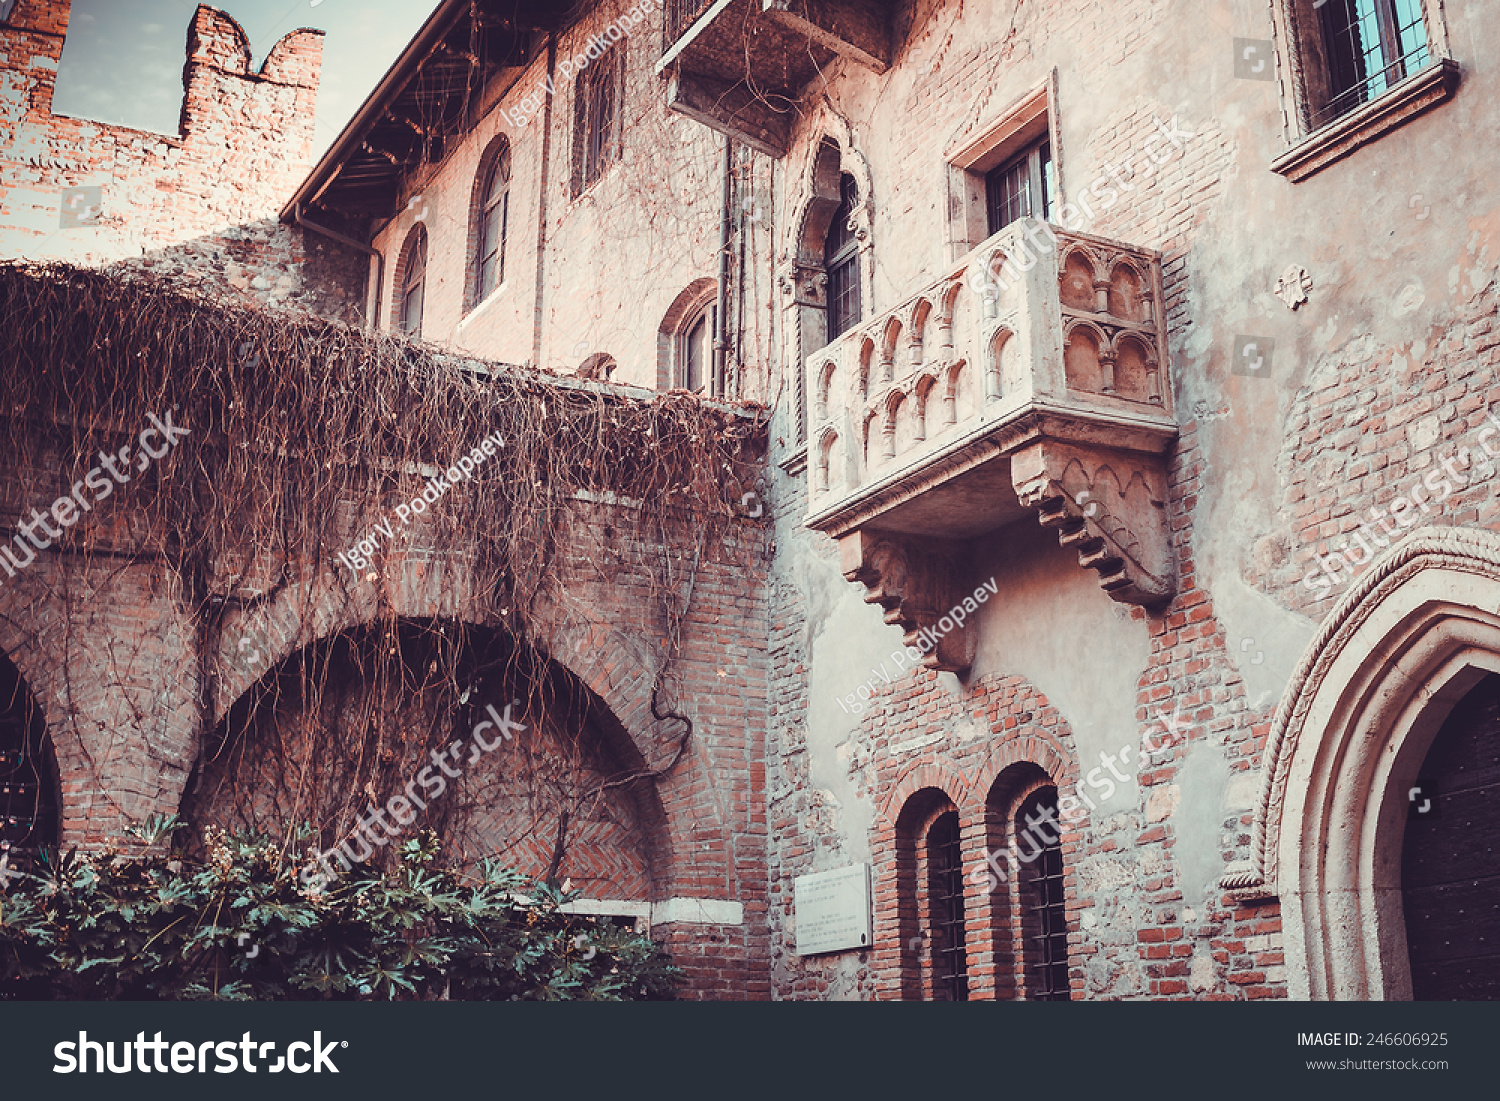 Famous juliets balcony verona stock photo 246606925 for Famous balcony